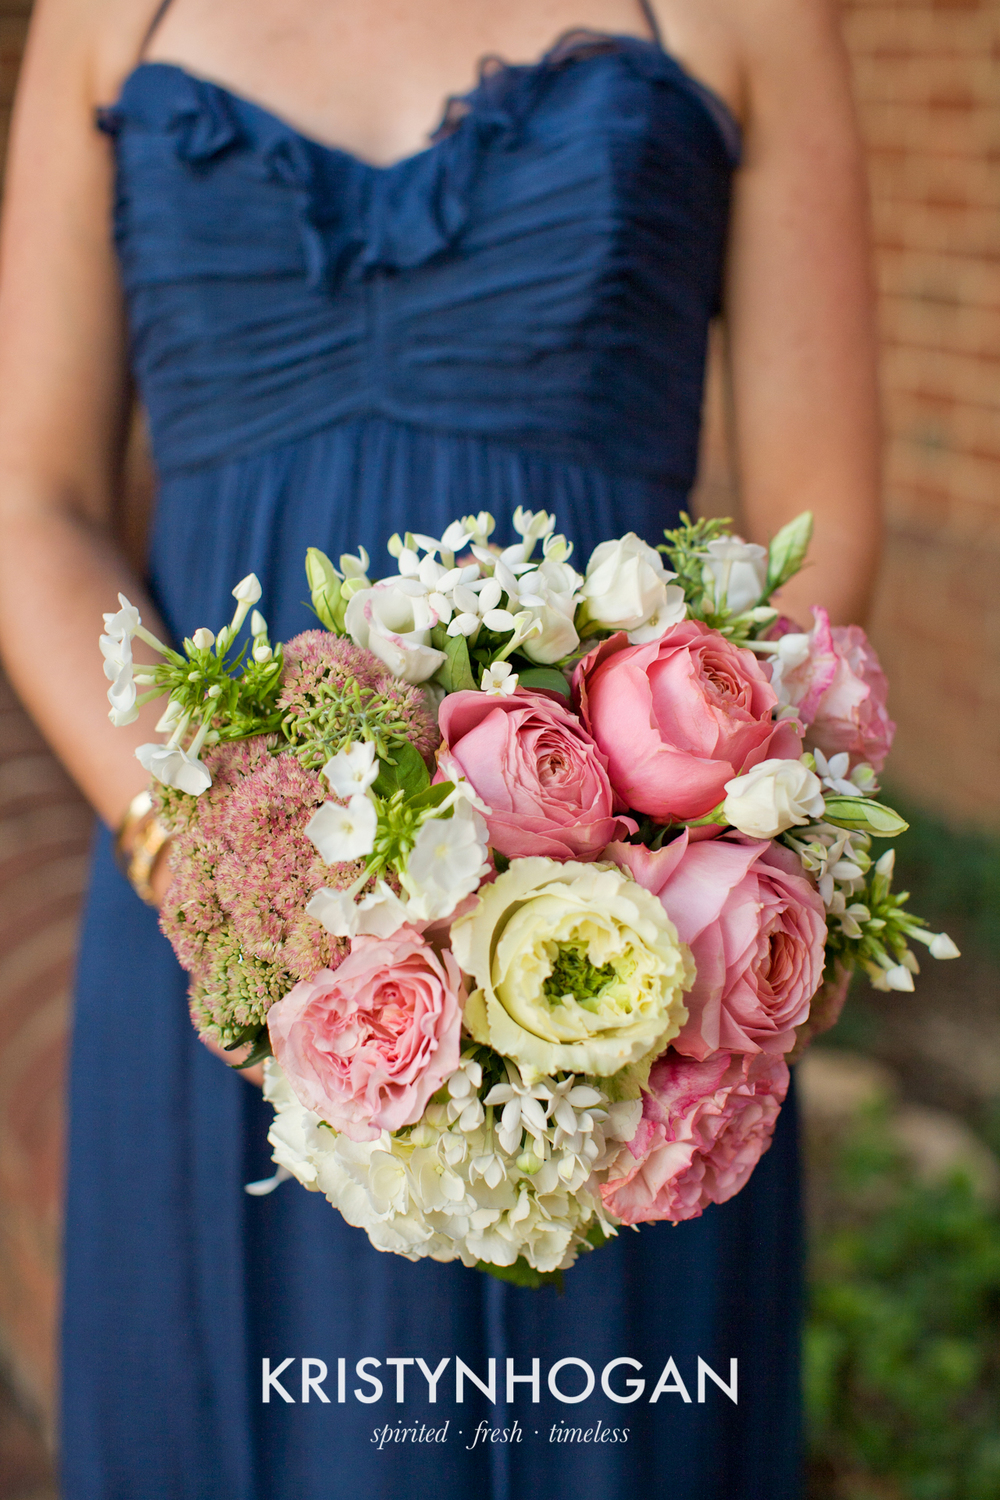 Bouquet of Garden Rose, Phlox, Lisianthus, Sedum , Hydrangea, and Bouvardia.